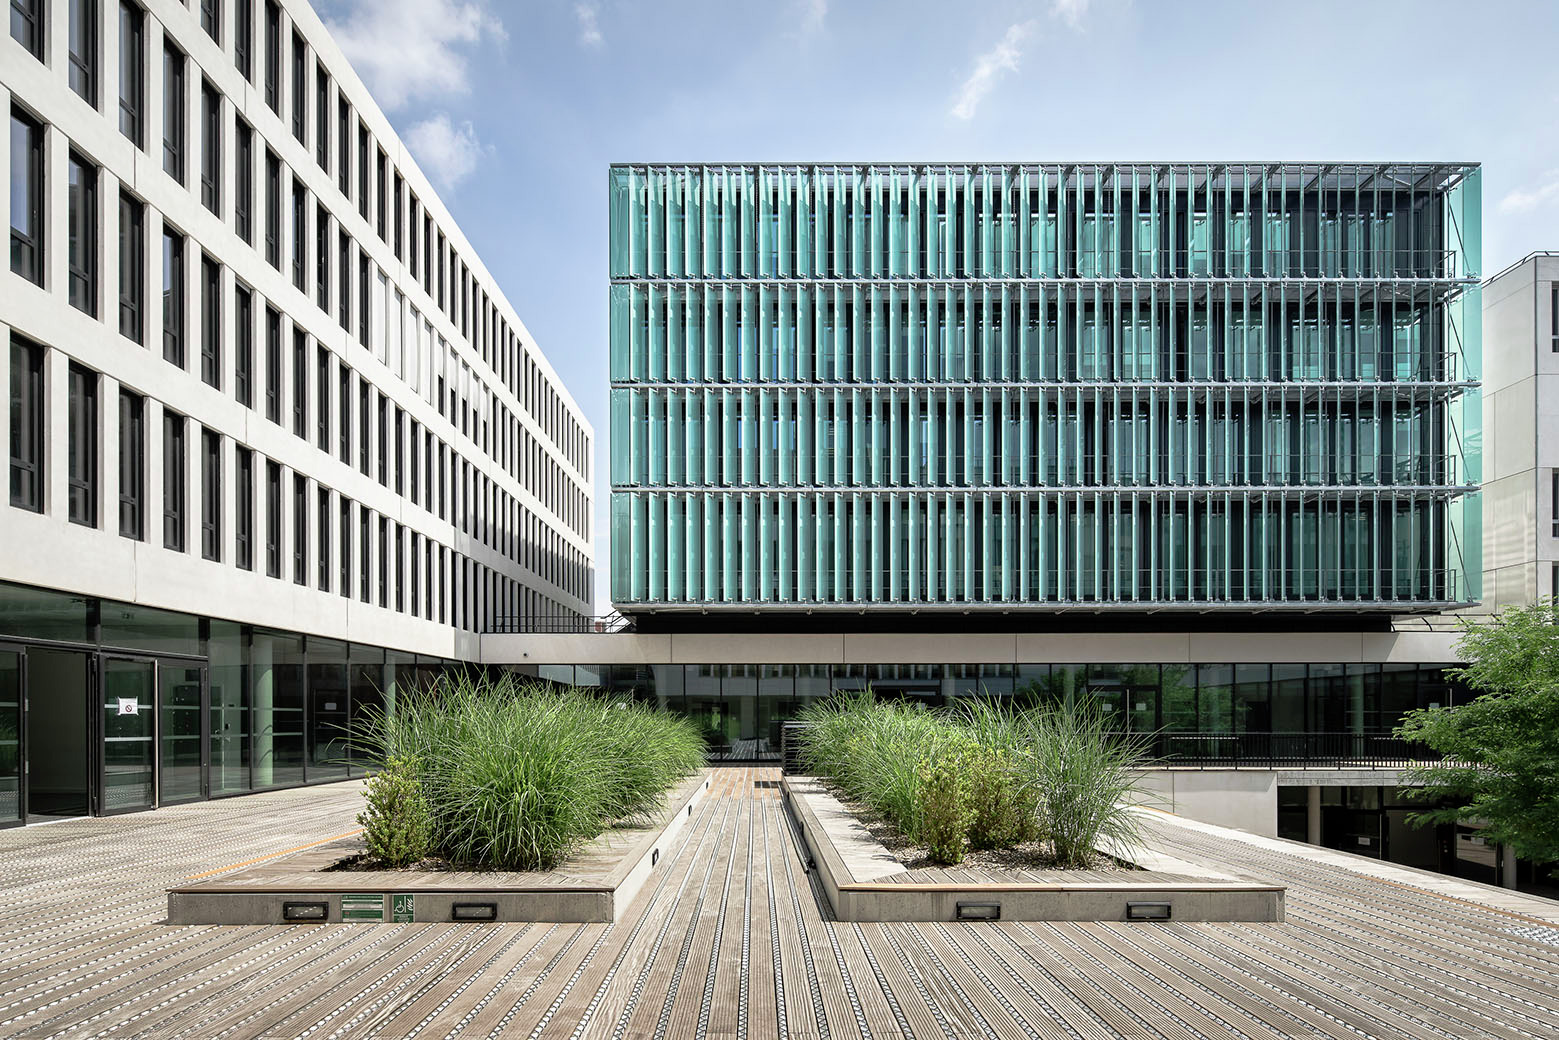 University centre des quais auer weber archdaily for Architecture lyon